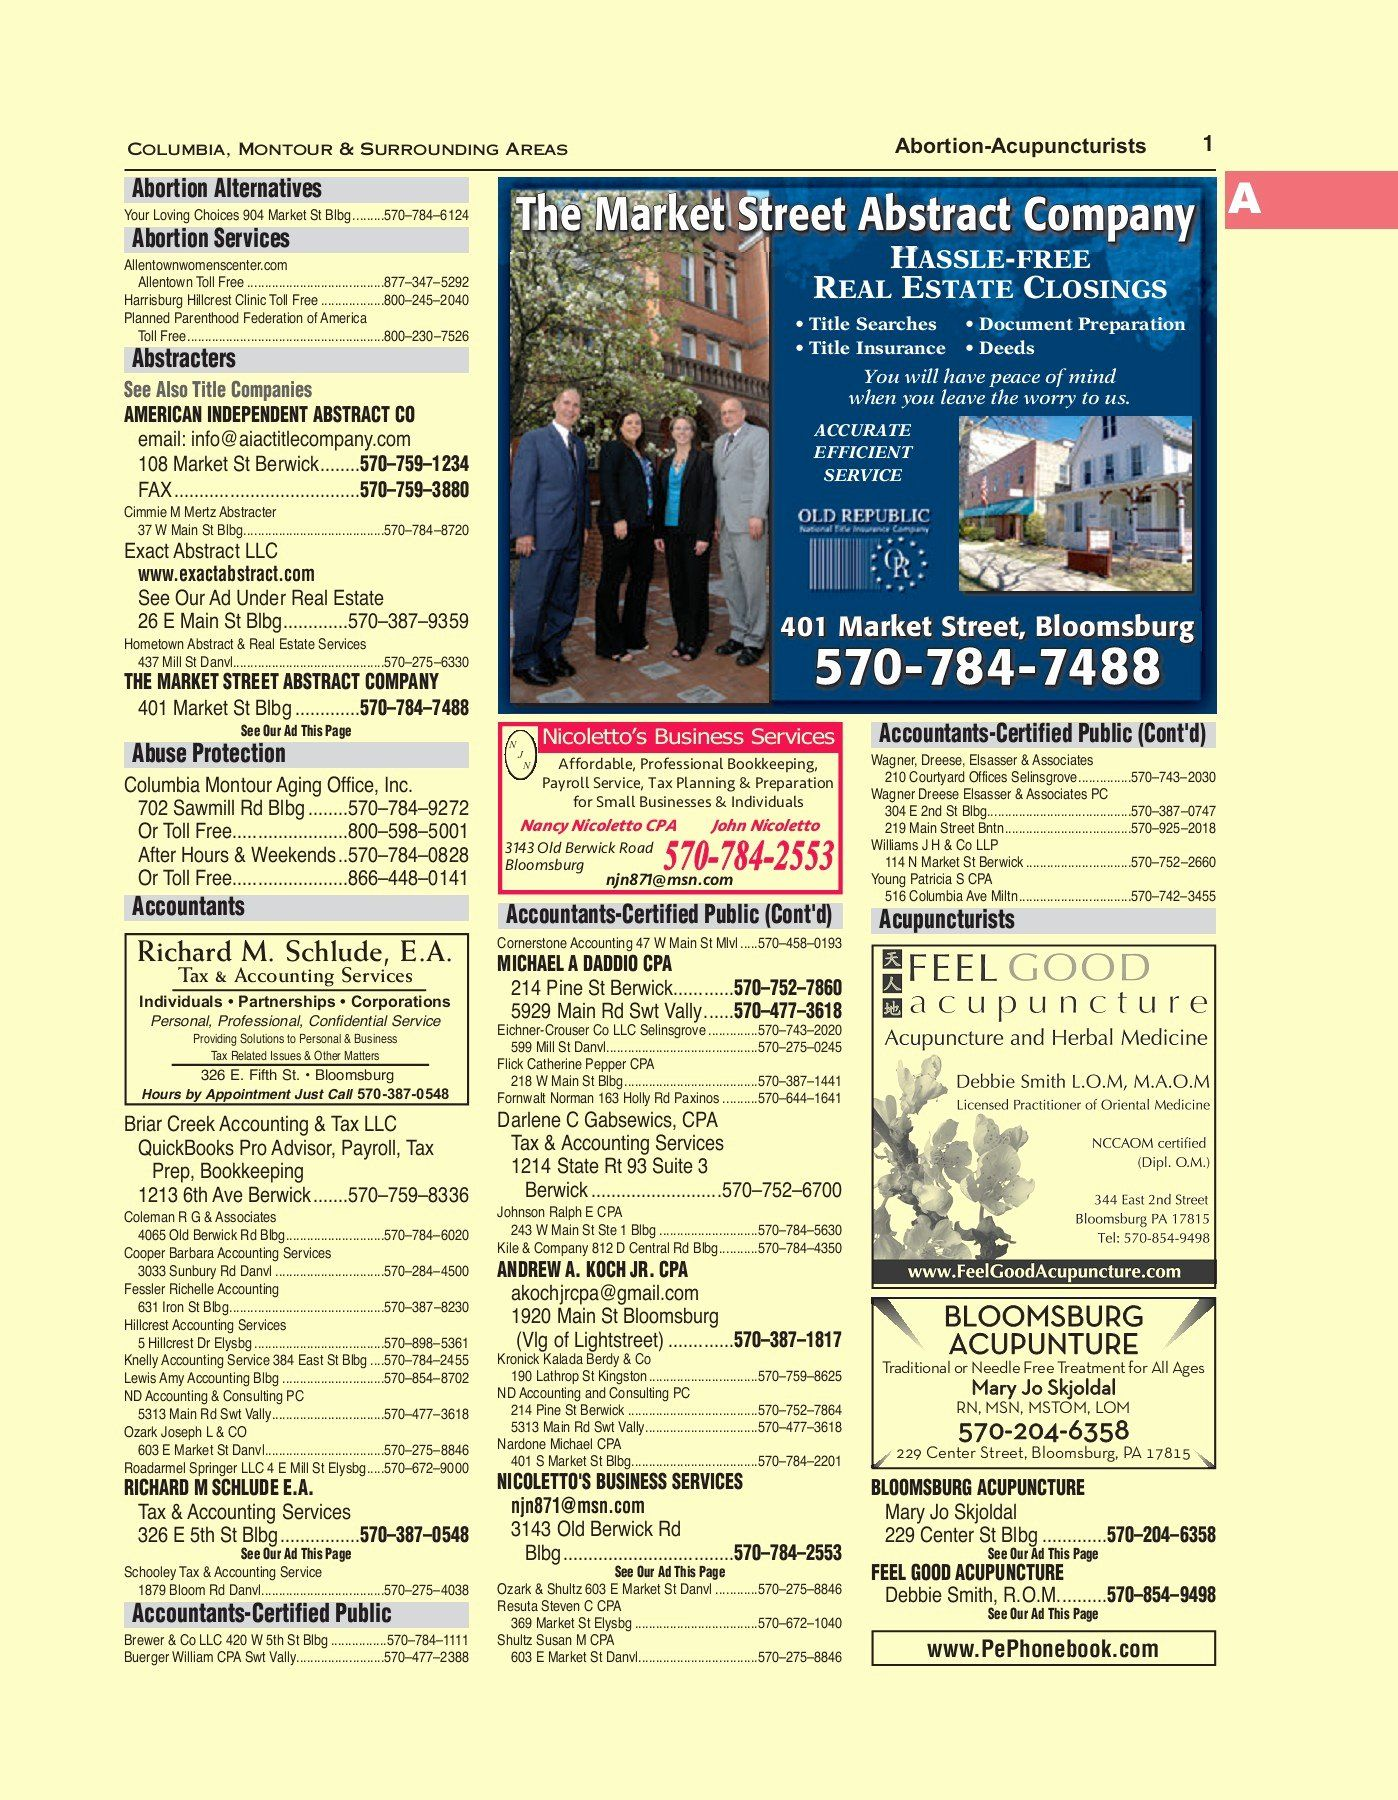 Tattoo Removal Ashland Ky Luxury 2019 Pephonebook Yellow Pages